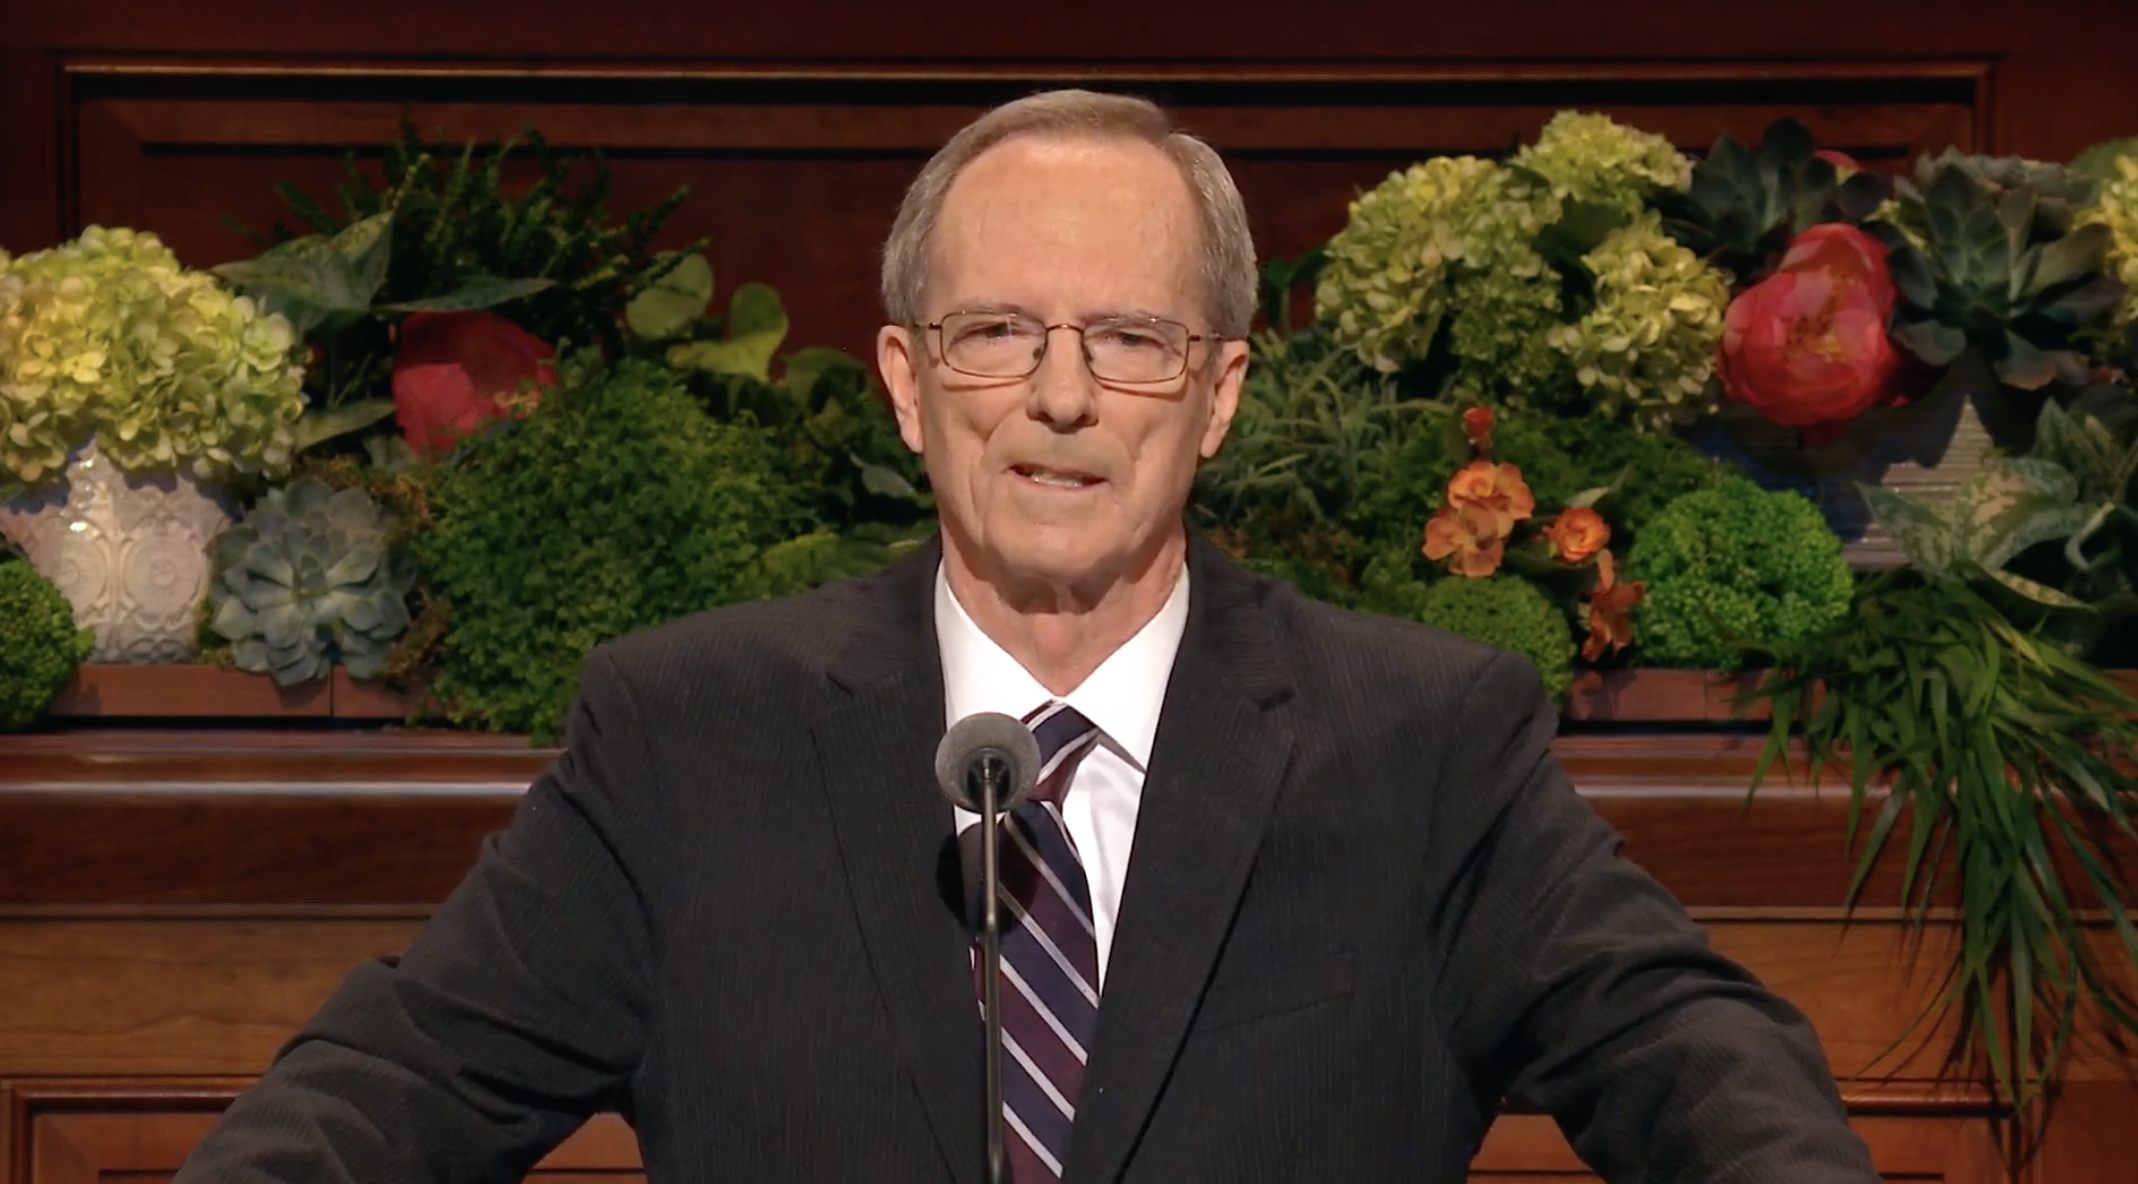 Brother Tad R. Callister gives his address during the Sunday morning session of the 189th Annual General Conference on April 7, 2019. Brother Callister was released from the Sunday School general presidency on April 6.